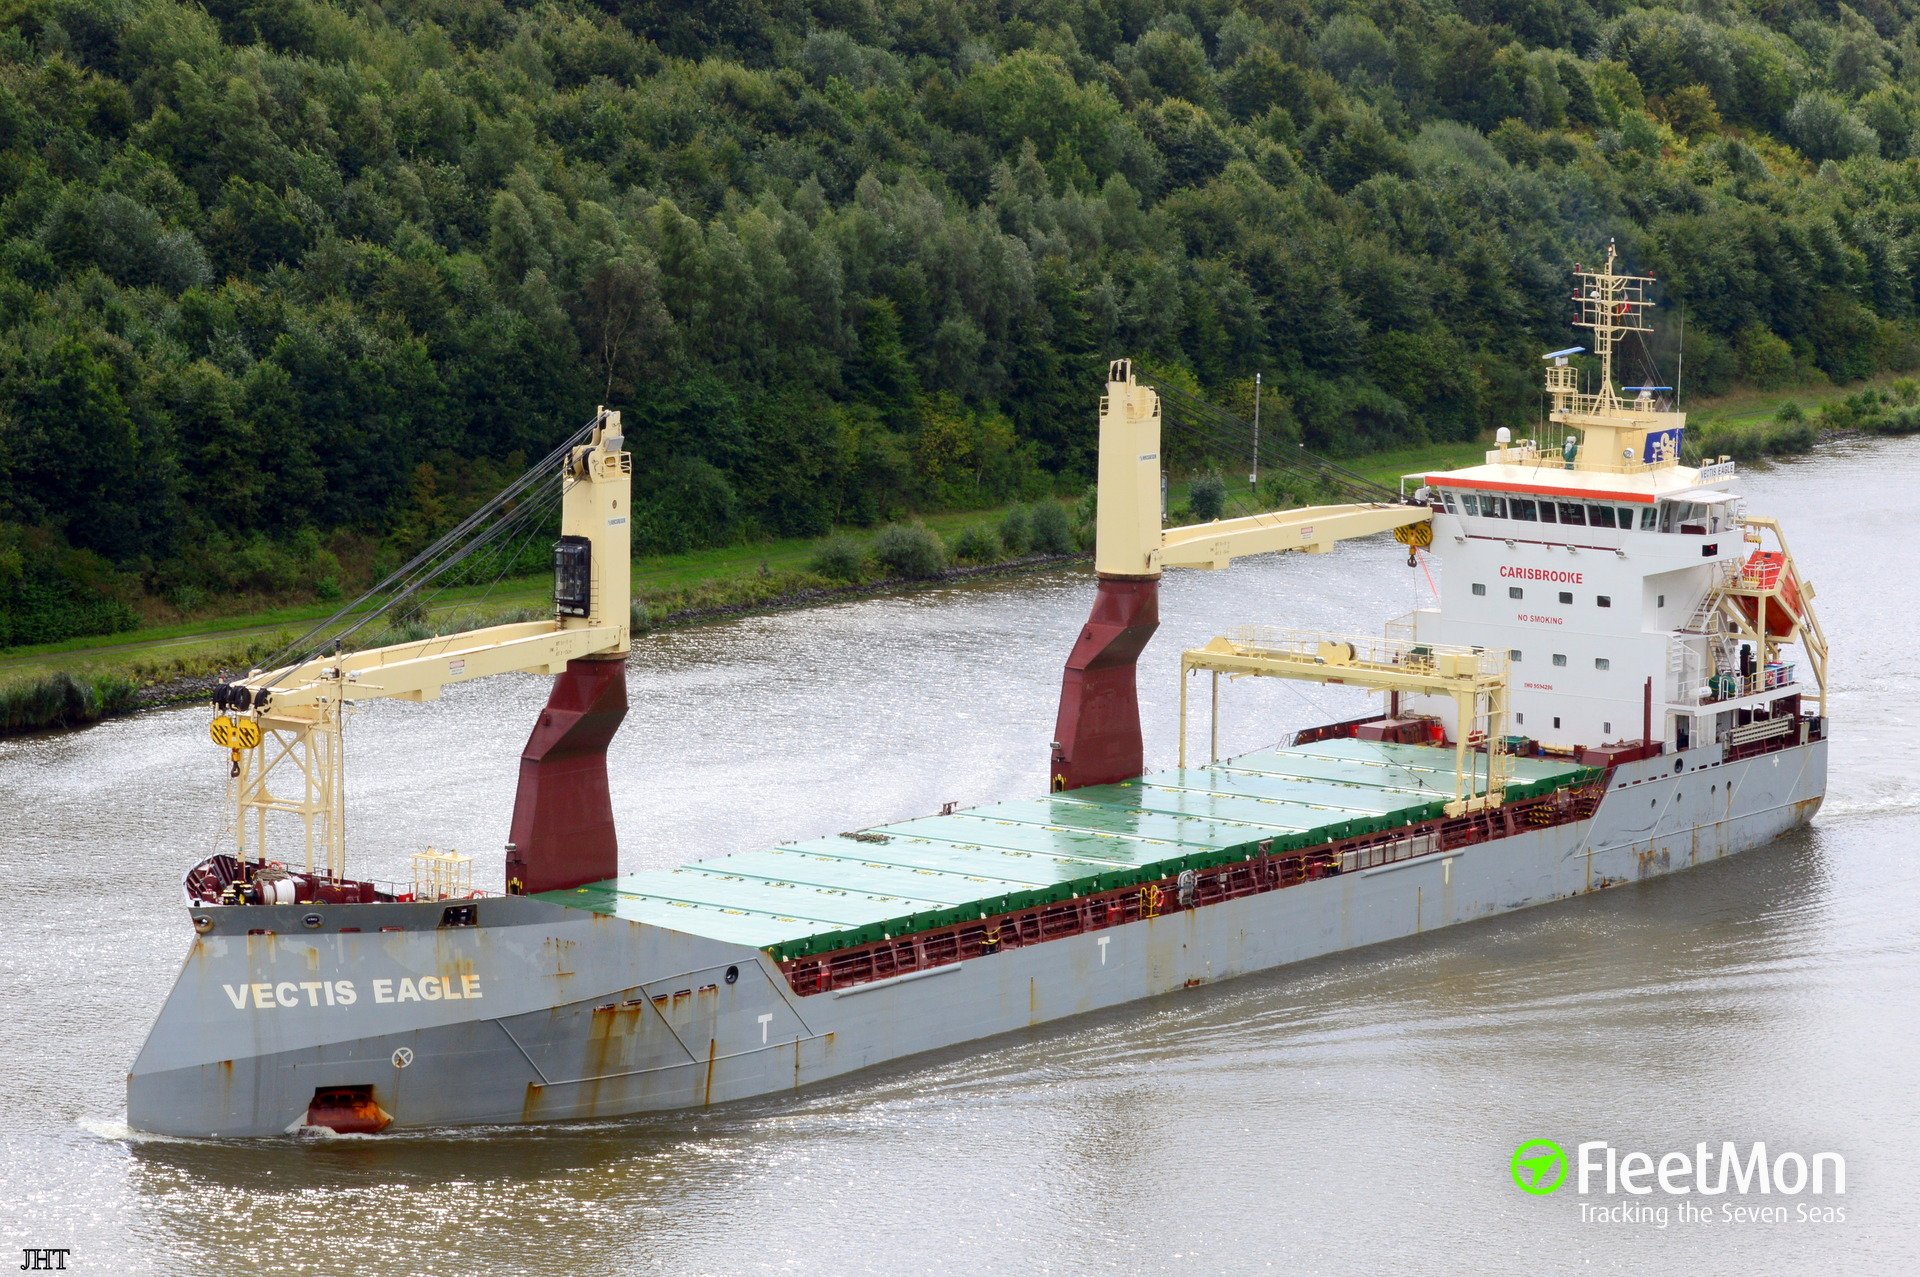 General cargo vessel Vectis Eagle allision in Kiel Canal